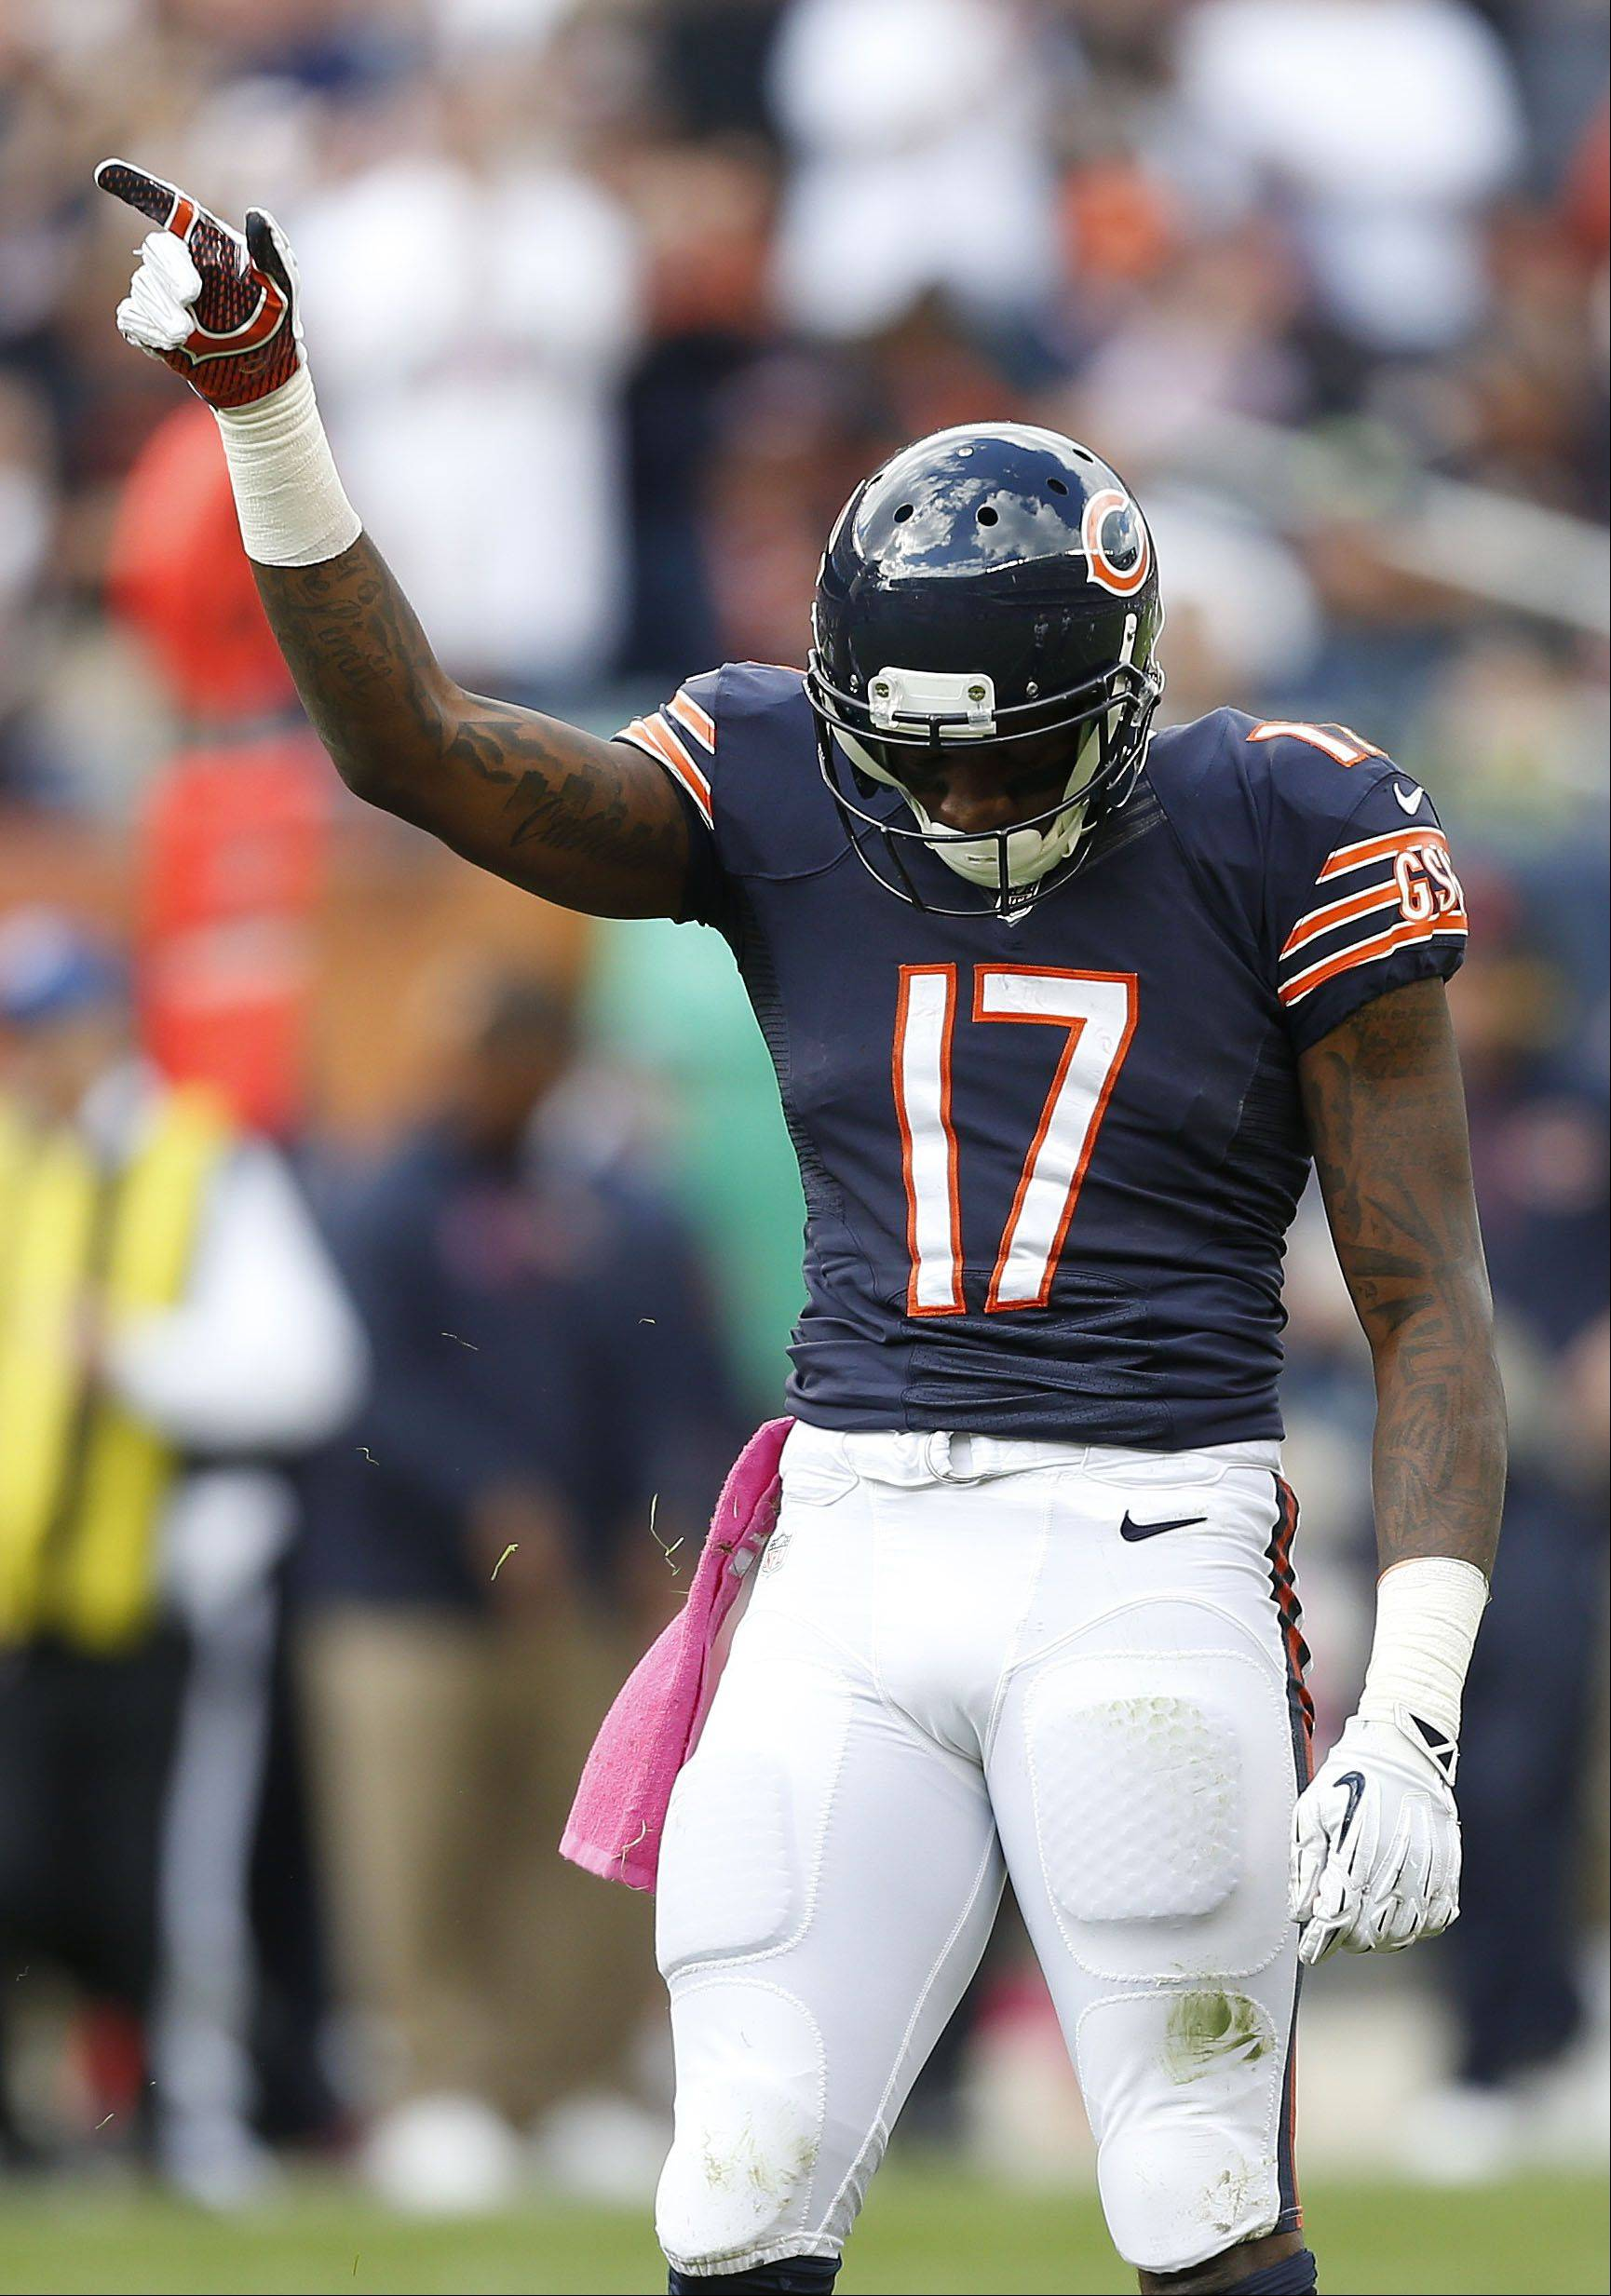 Alshon Jeffery points after a first-down catch during their 26-18 loss Sunday at Soldier Field in Chicago.